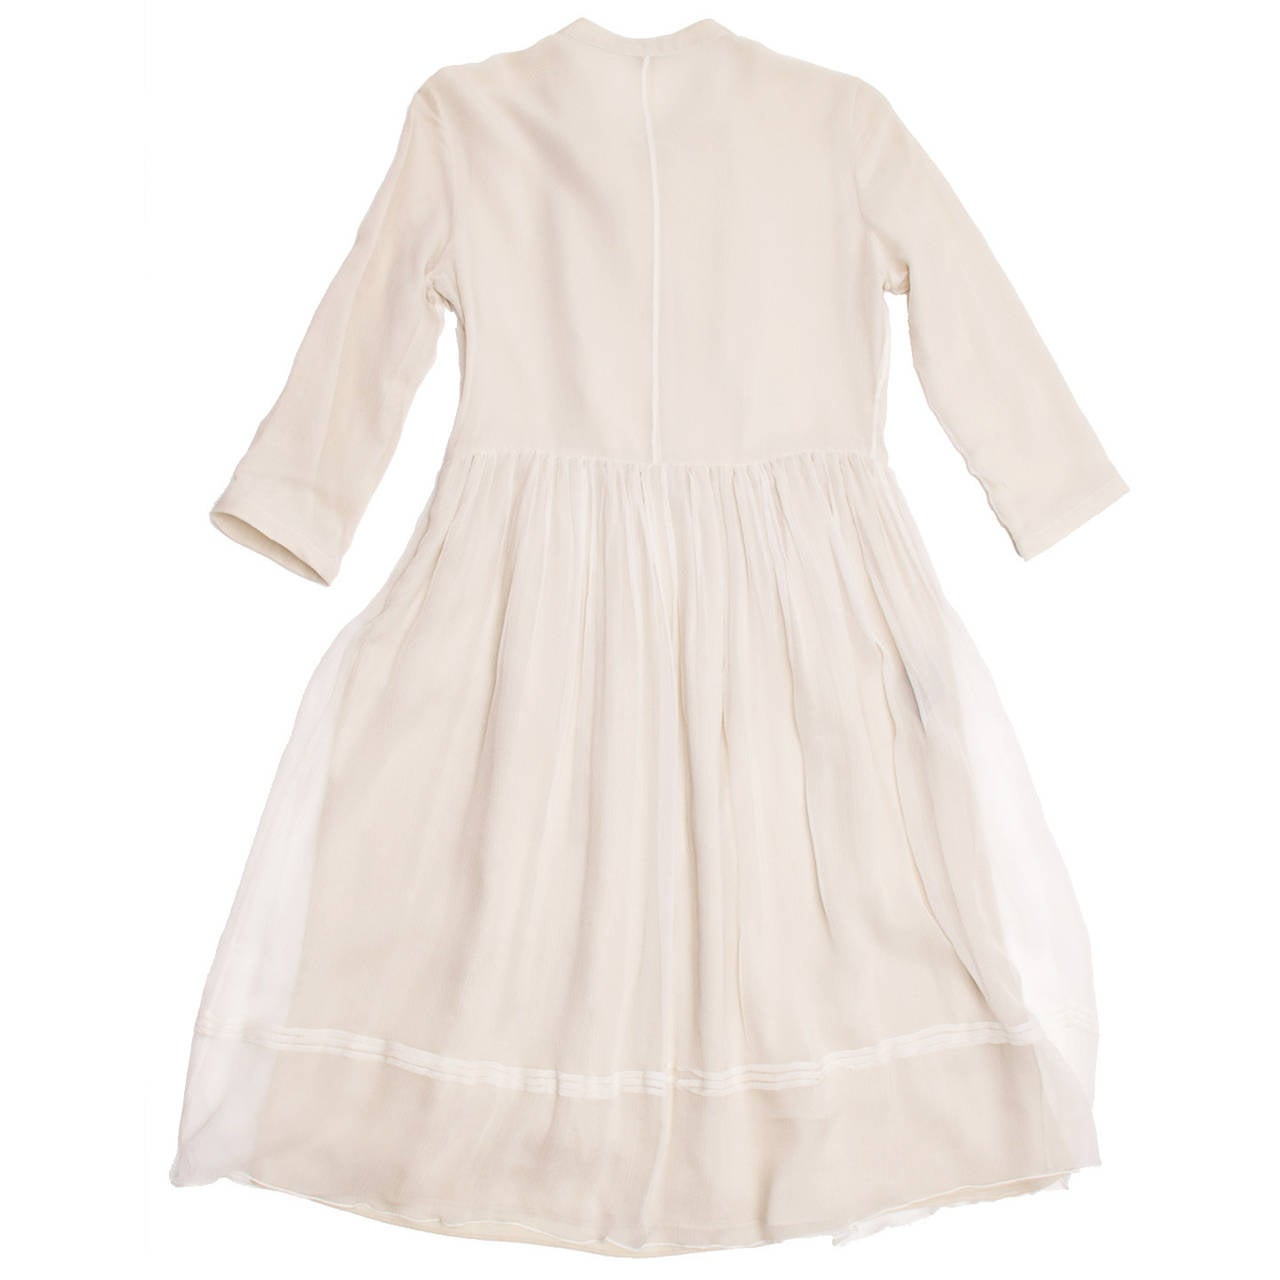 Burberry Ivory Crinkled Silk Chiffon Dress With Tie Neck 3